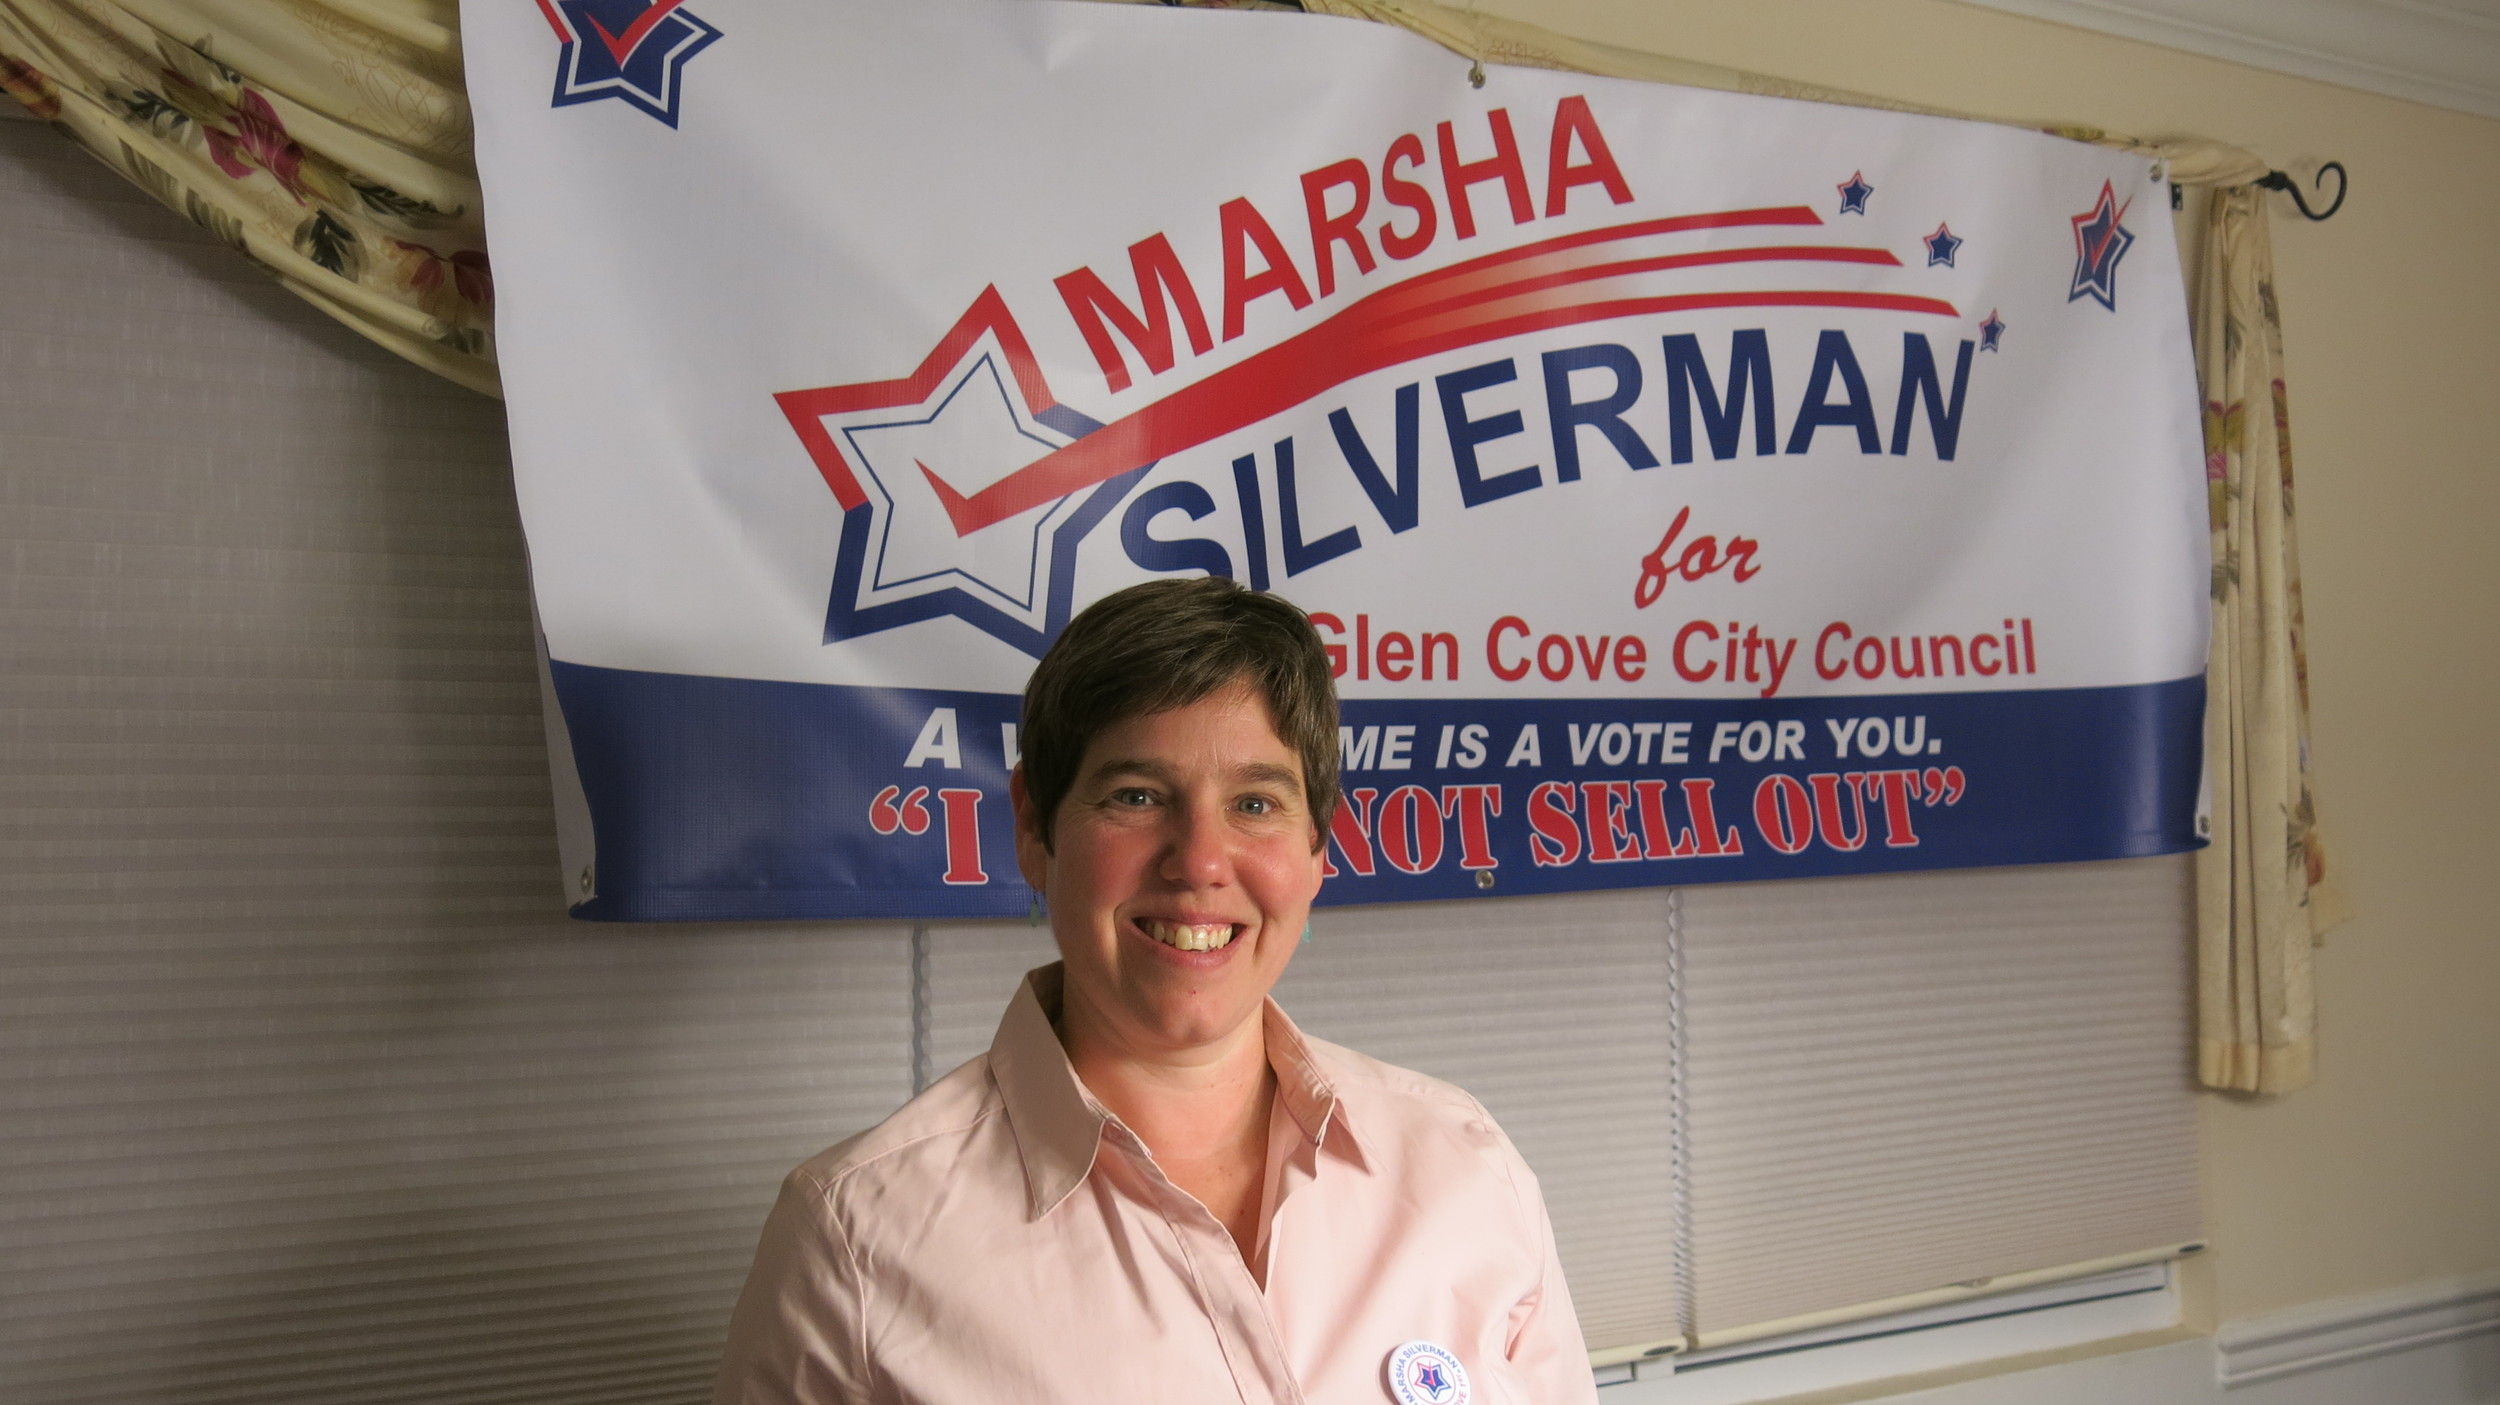 There was an upset in last night's primary when Marsha Silverman, an Independent, won handily. Incumbent Roderick Watson has been eliminated from the race.